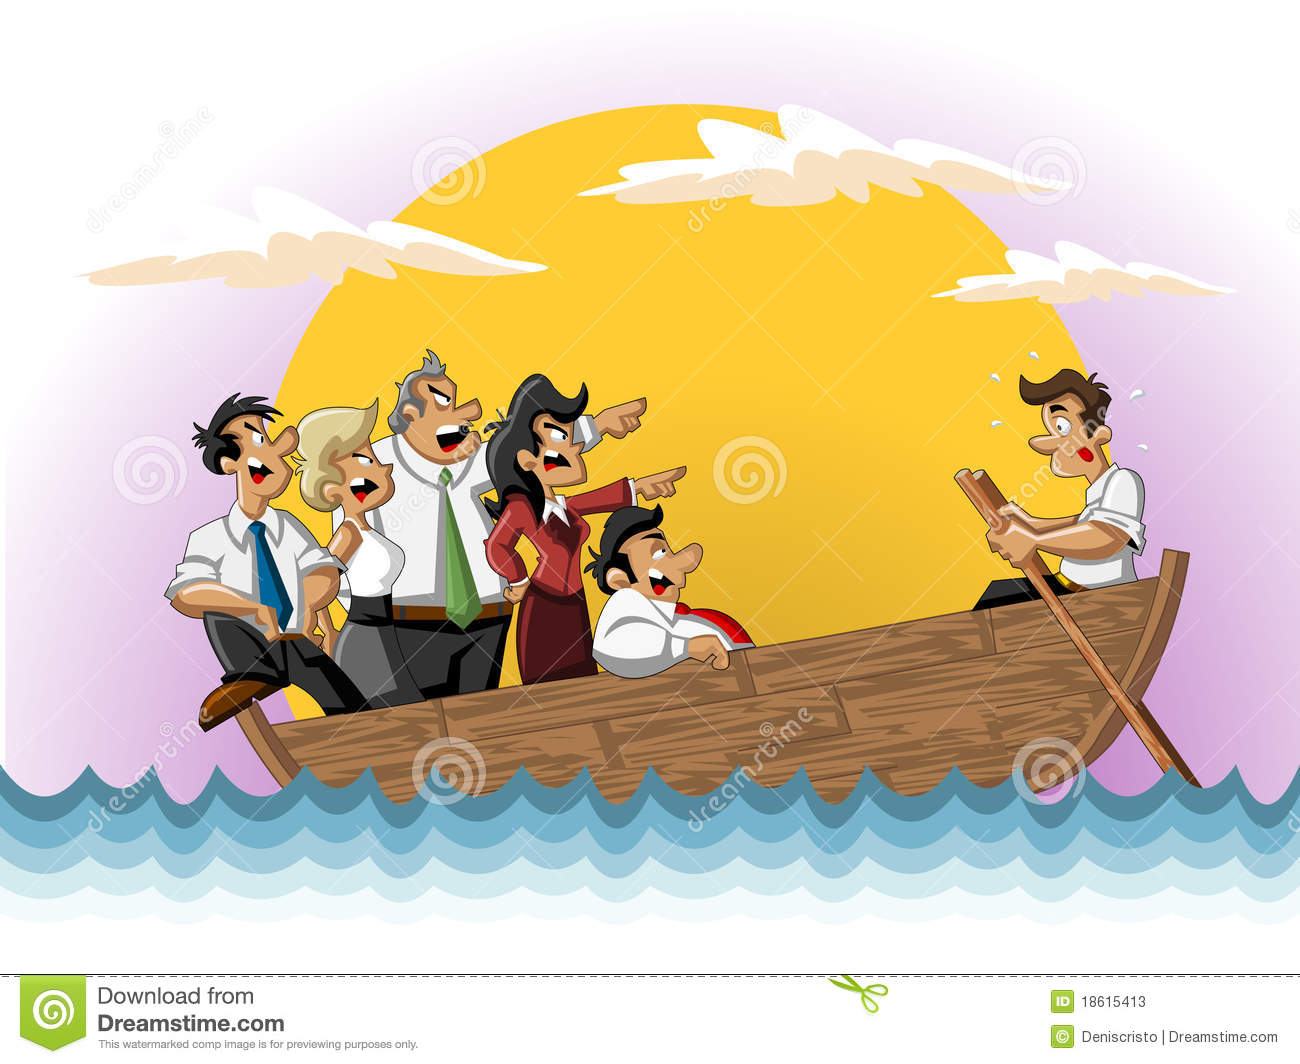 Business Cartoon Team On Boat Stock Photos - Image: 18615413